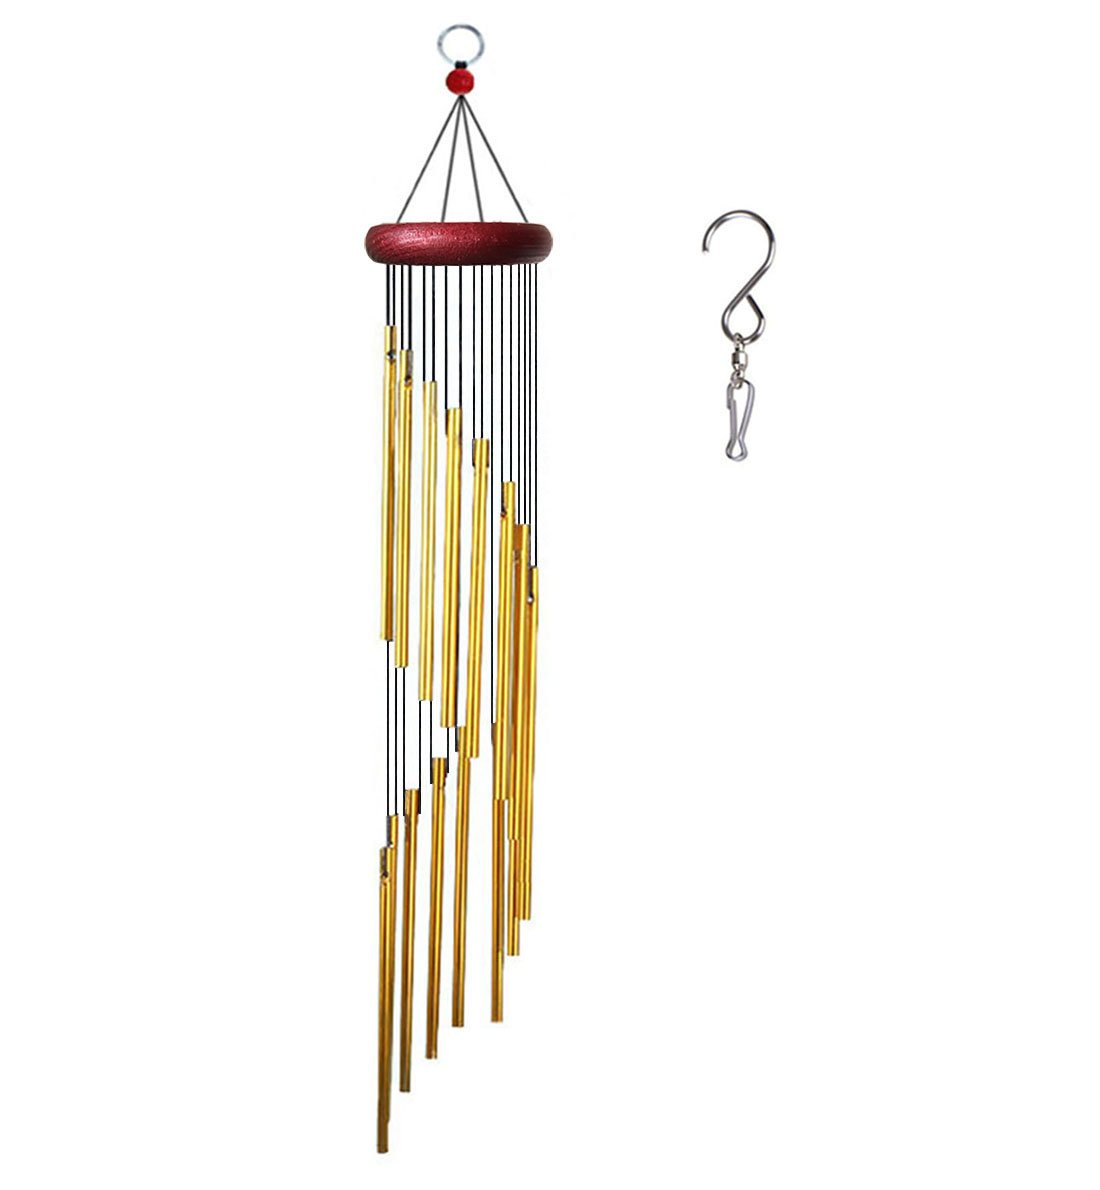 Viewpick Wind Chime Amazing Grace Decoration Mobile Chimes for Indoor Outdoor Porch Garden Balcony Backyard Patio Lawn(16 Golden Aluminum Alloy Tubes)